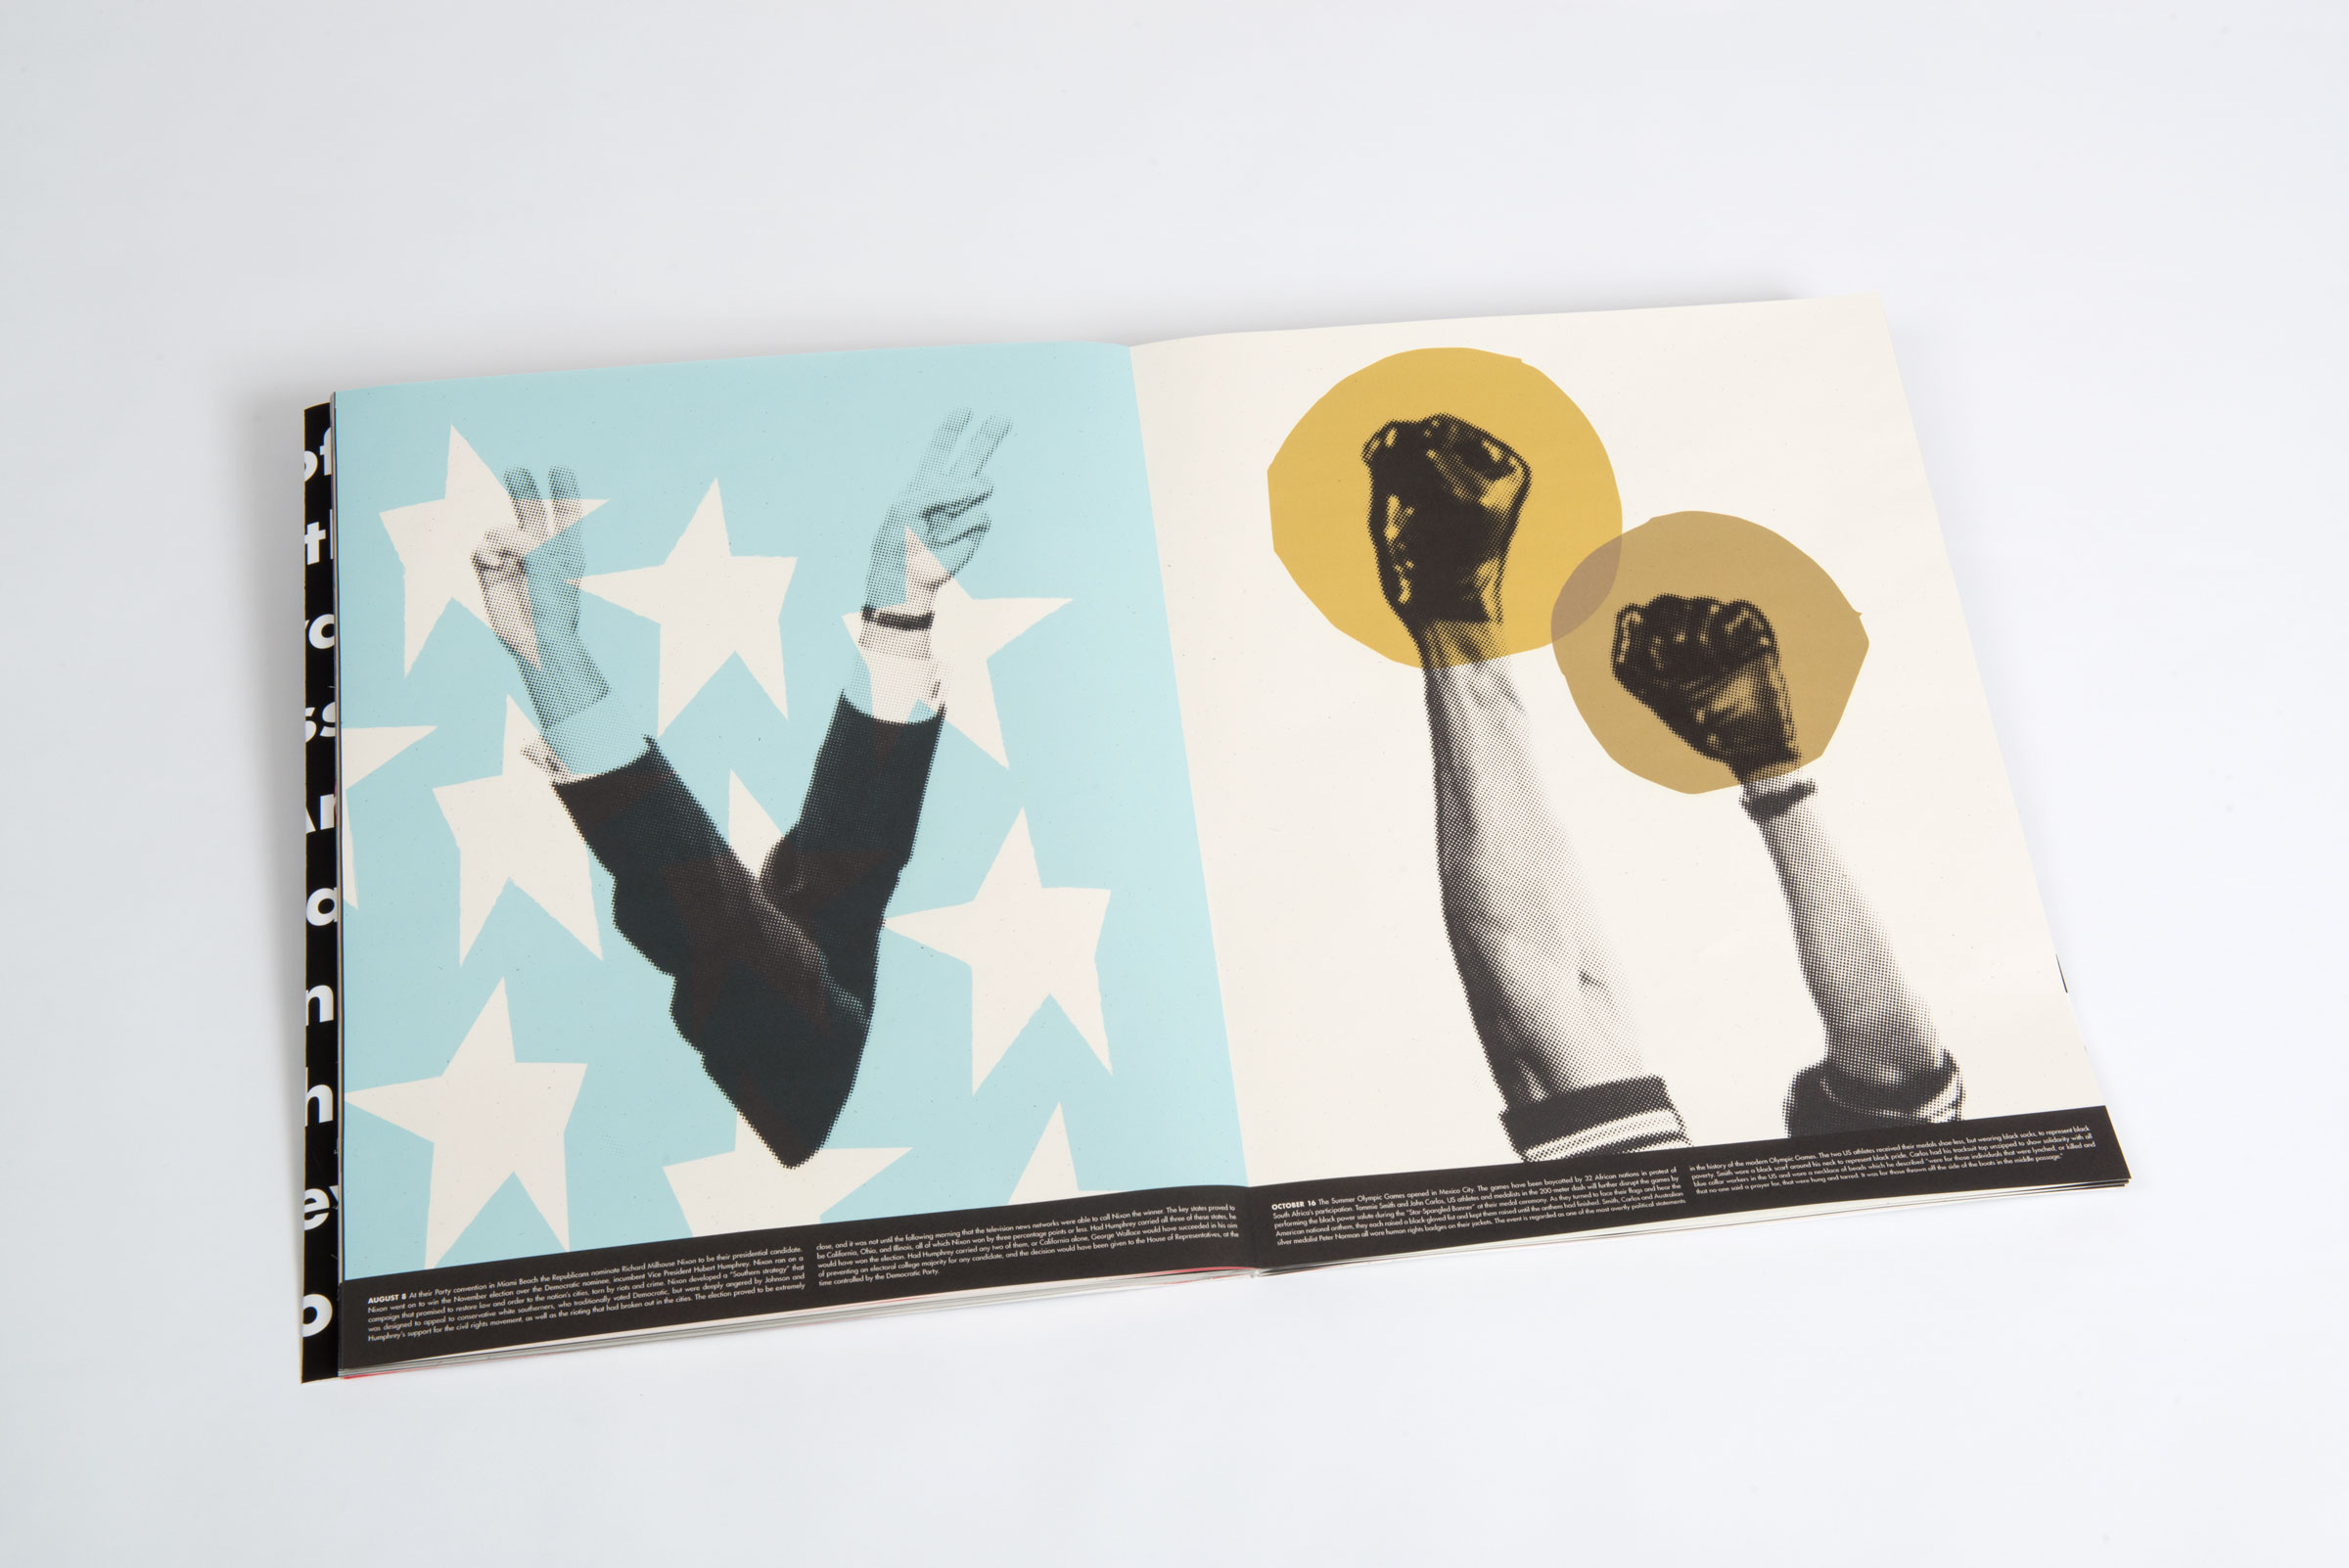 Nixon Chosen as Democratic Nominee // Protest by Tommie Smith and John Carlos at Olympic Games